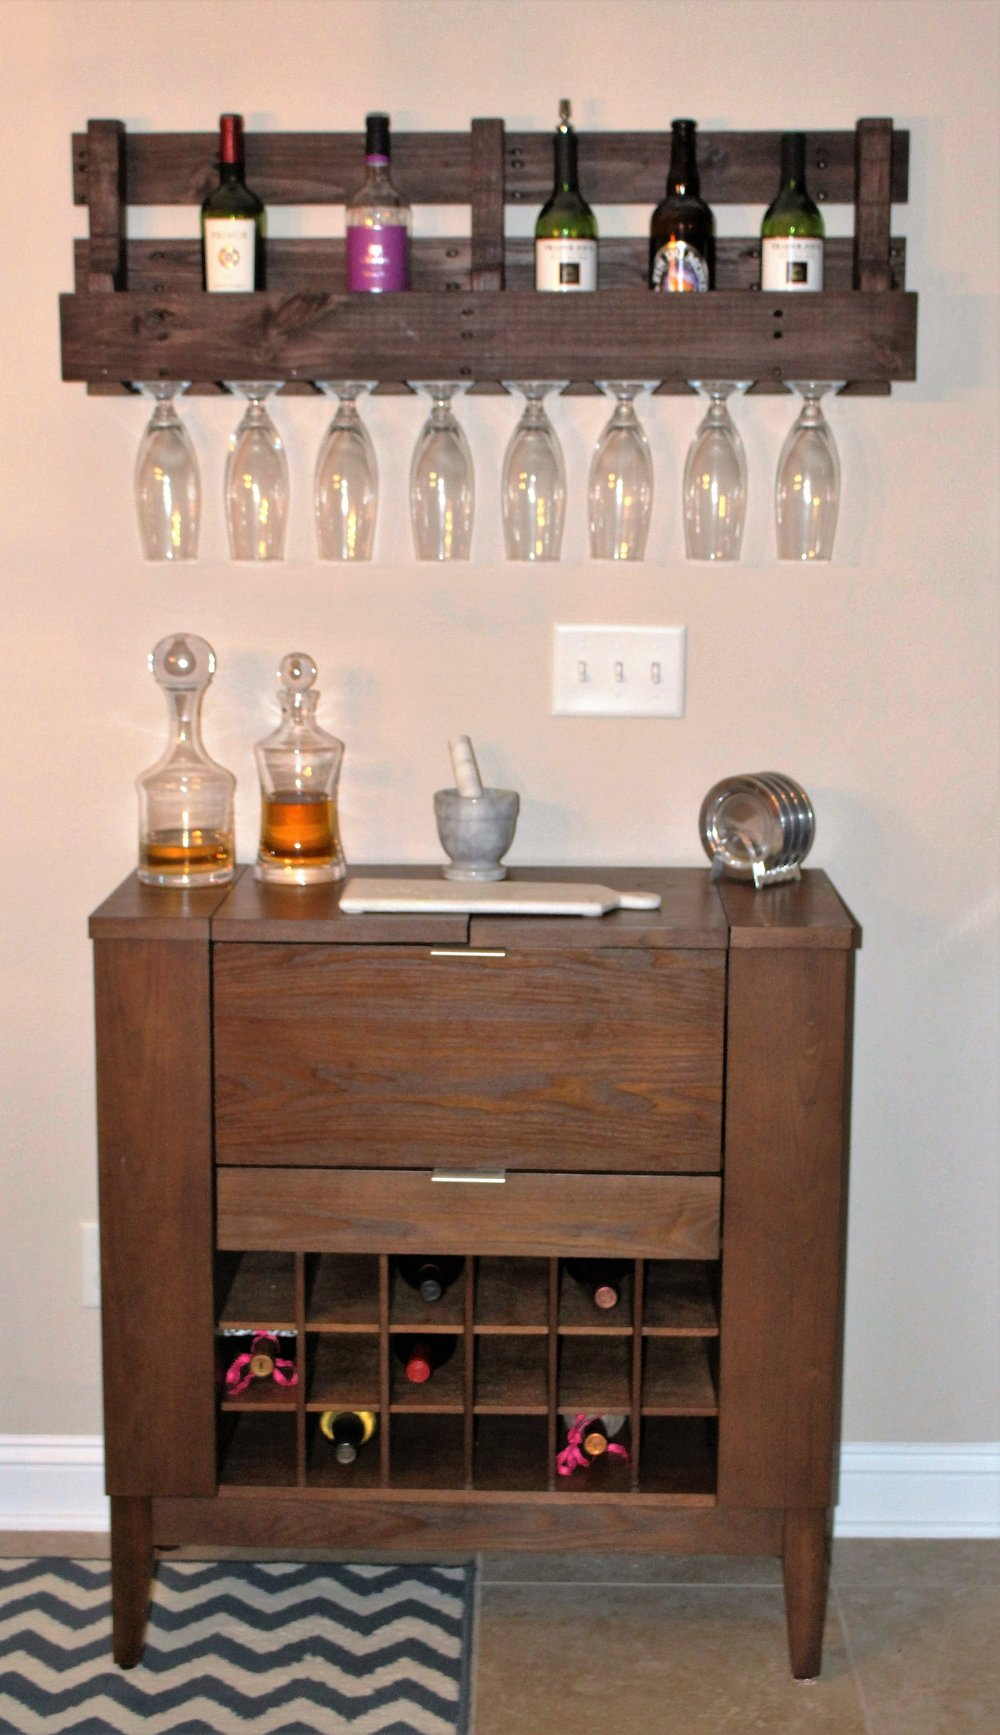 Crate & Barrel Bar cabinet